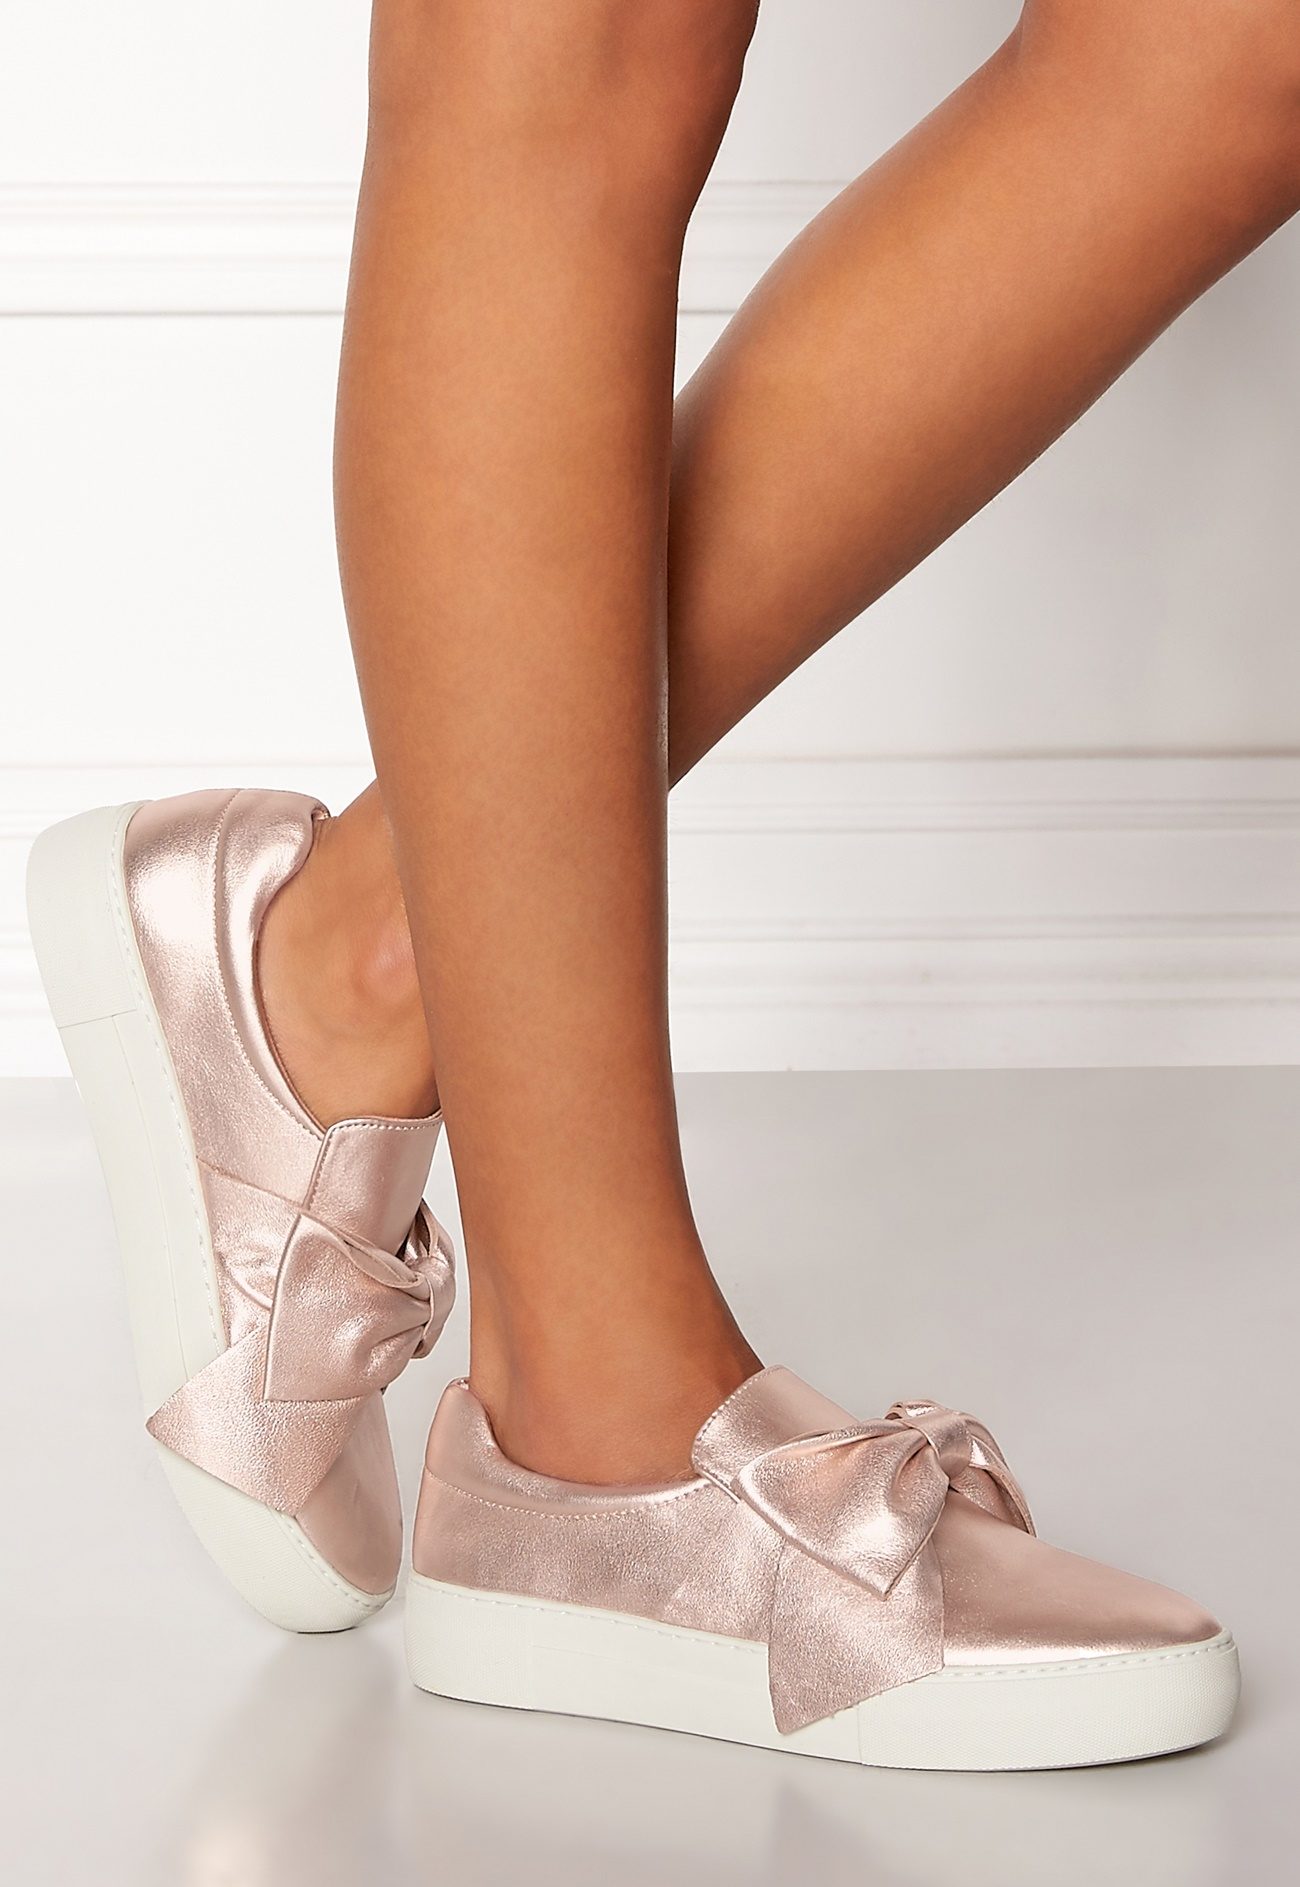 ... Steve Madden Empire Slip-on Shoes Rose Gold Bubbleroom.eu ...